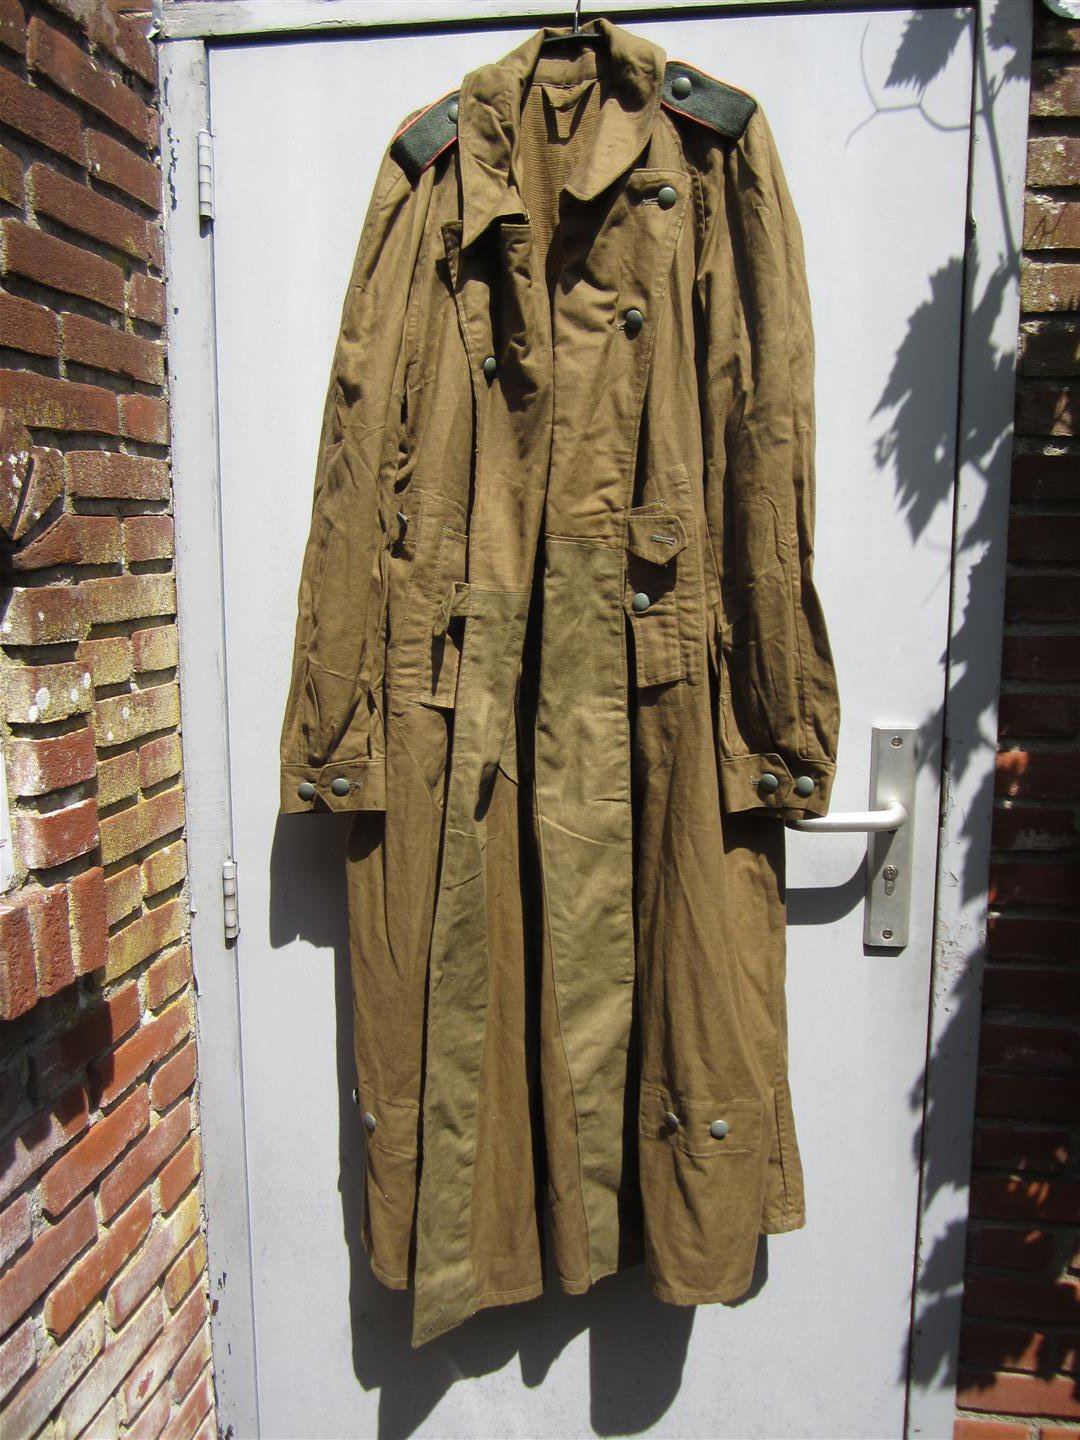 WW2 DAK Panzer Motorcyclist's Coat